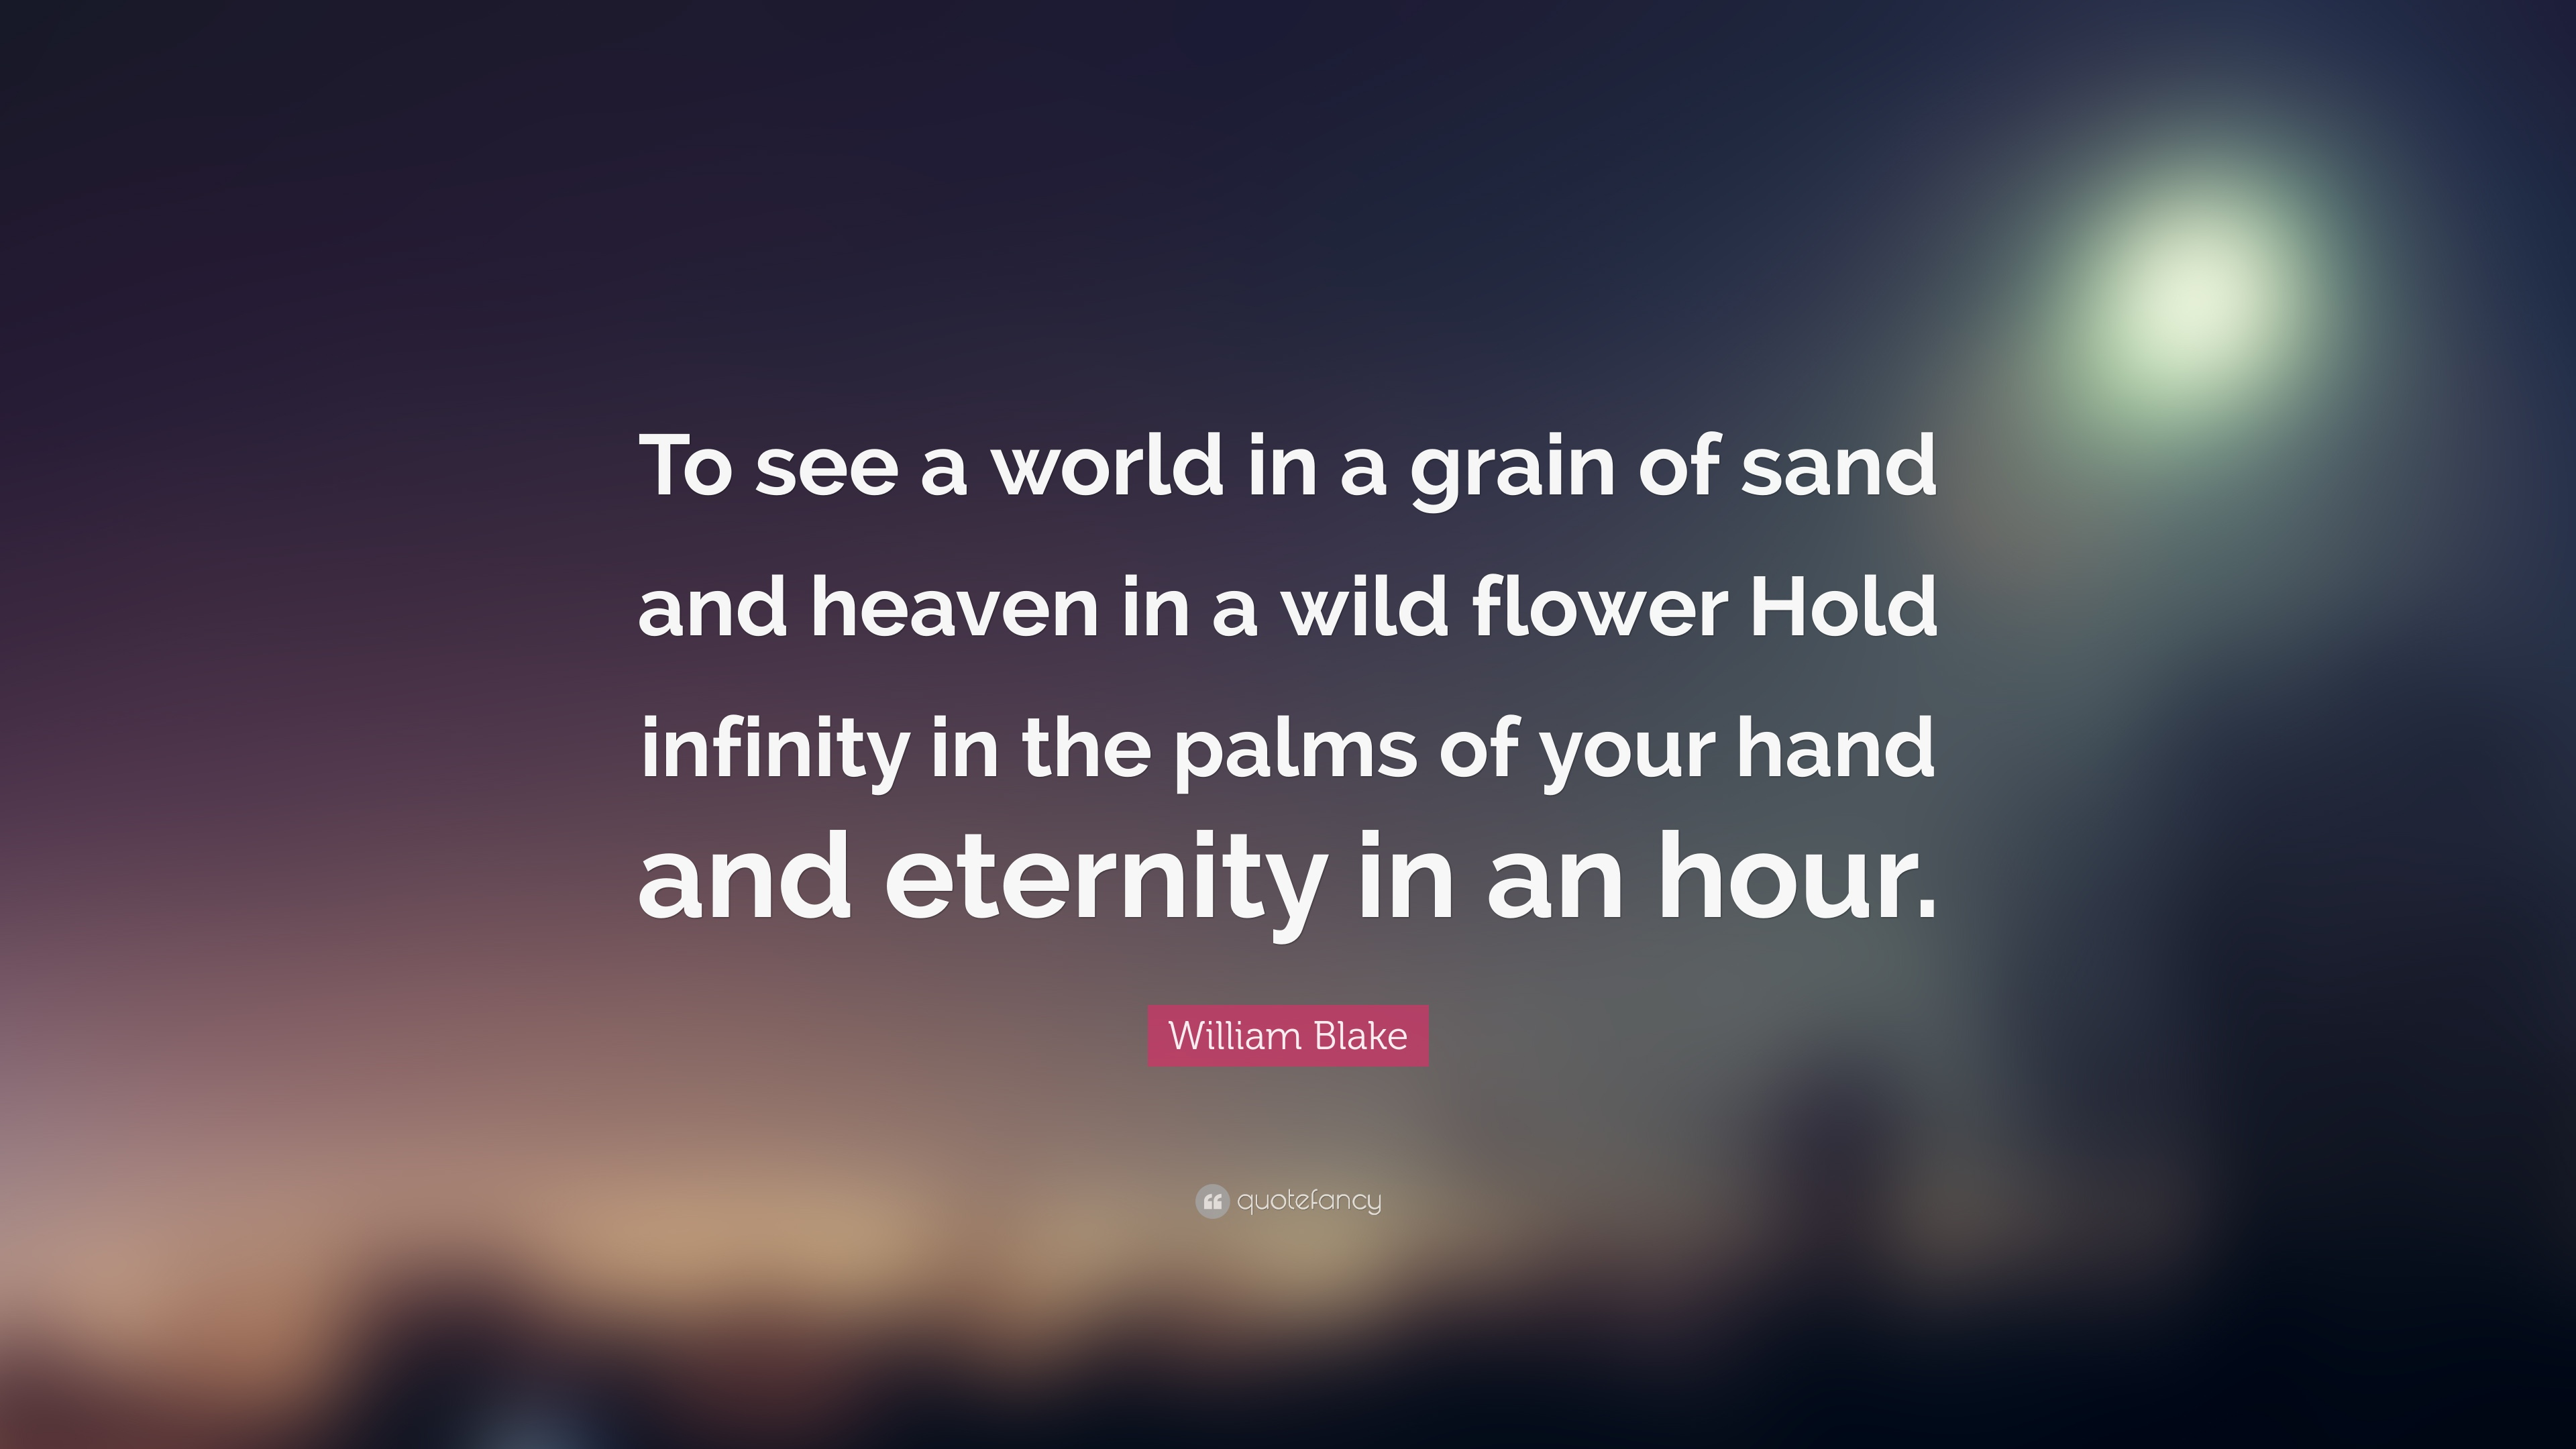 Secret Life Of Walter Mitty Quotes Wallpaper William Blake Quote To See A World In A Grain Of Sand